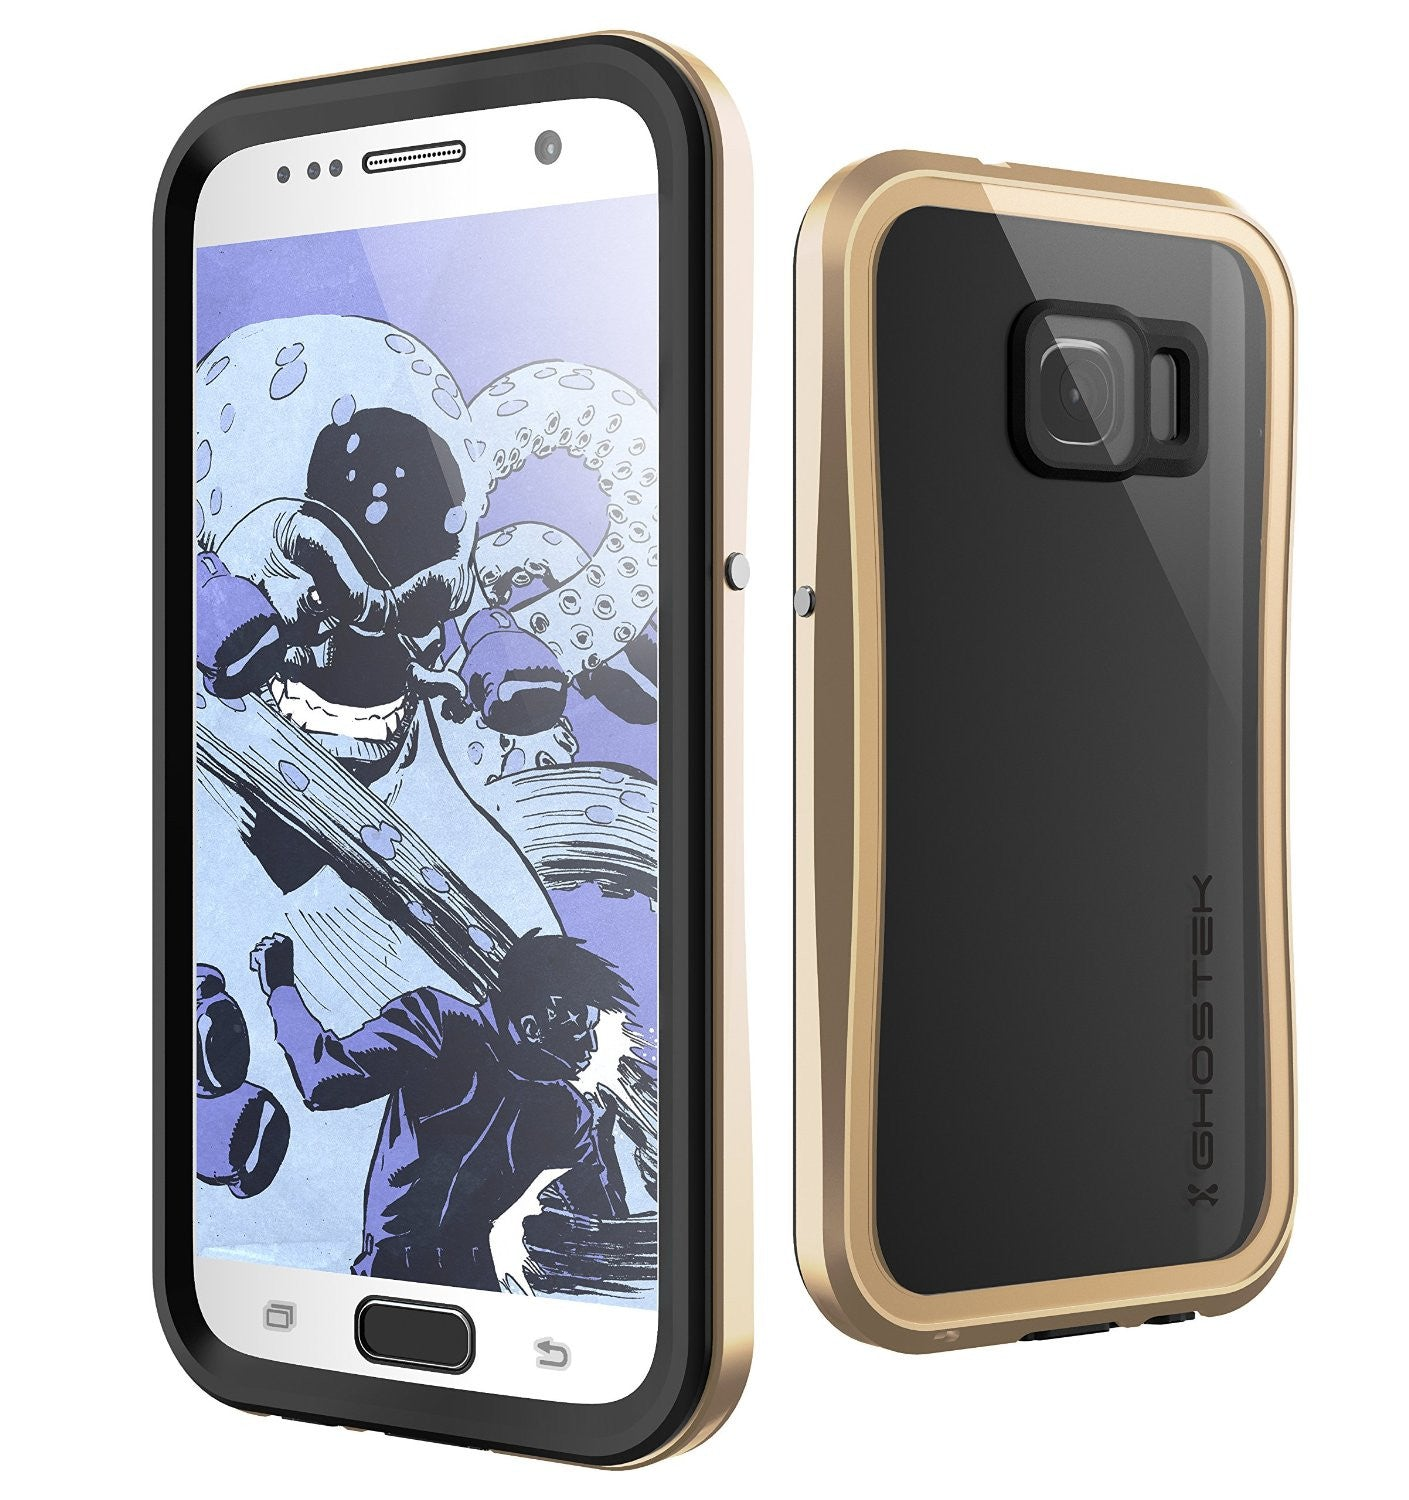 Galaxy S7 Waterproof Case, Ghostek Atomic 2.0 Gold  Water/Shock/Dirt/Snow Proof | Lifetime Warranty